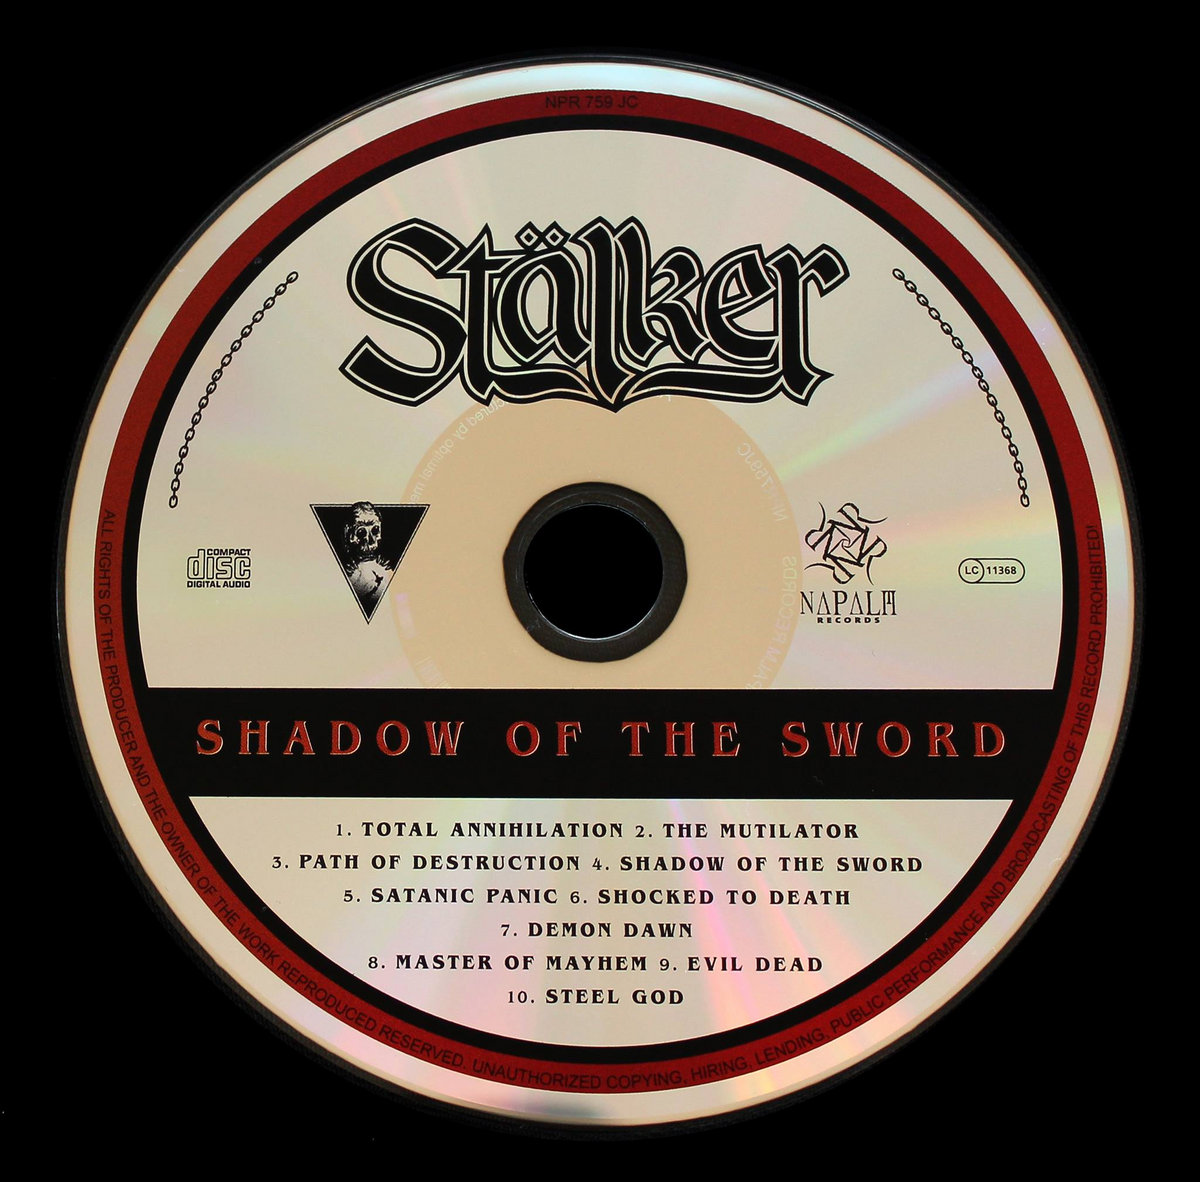 Shadow of the Sword | STALKER